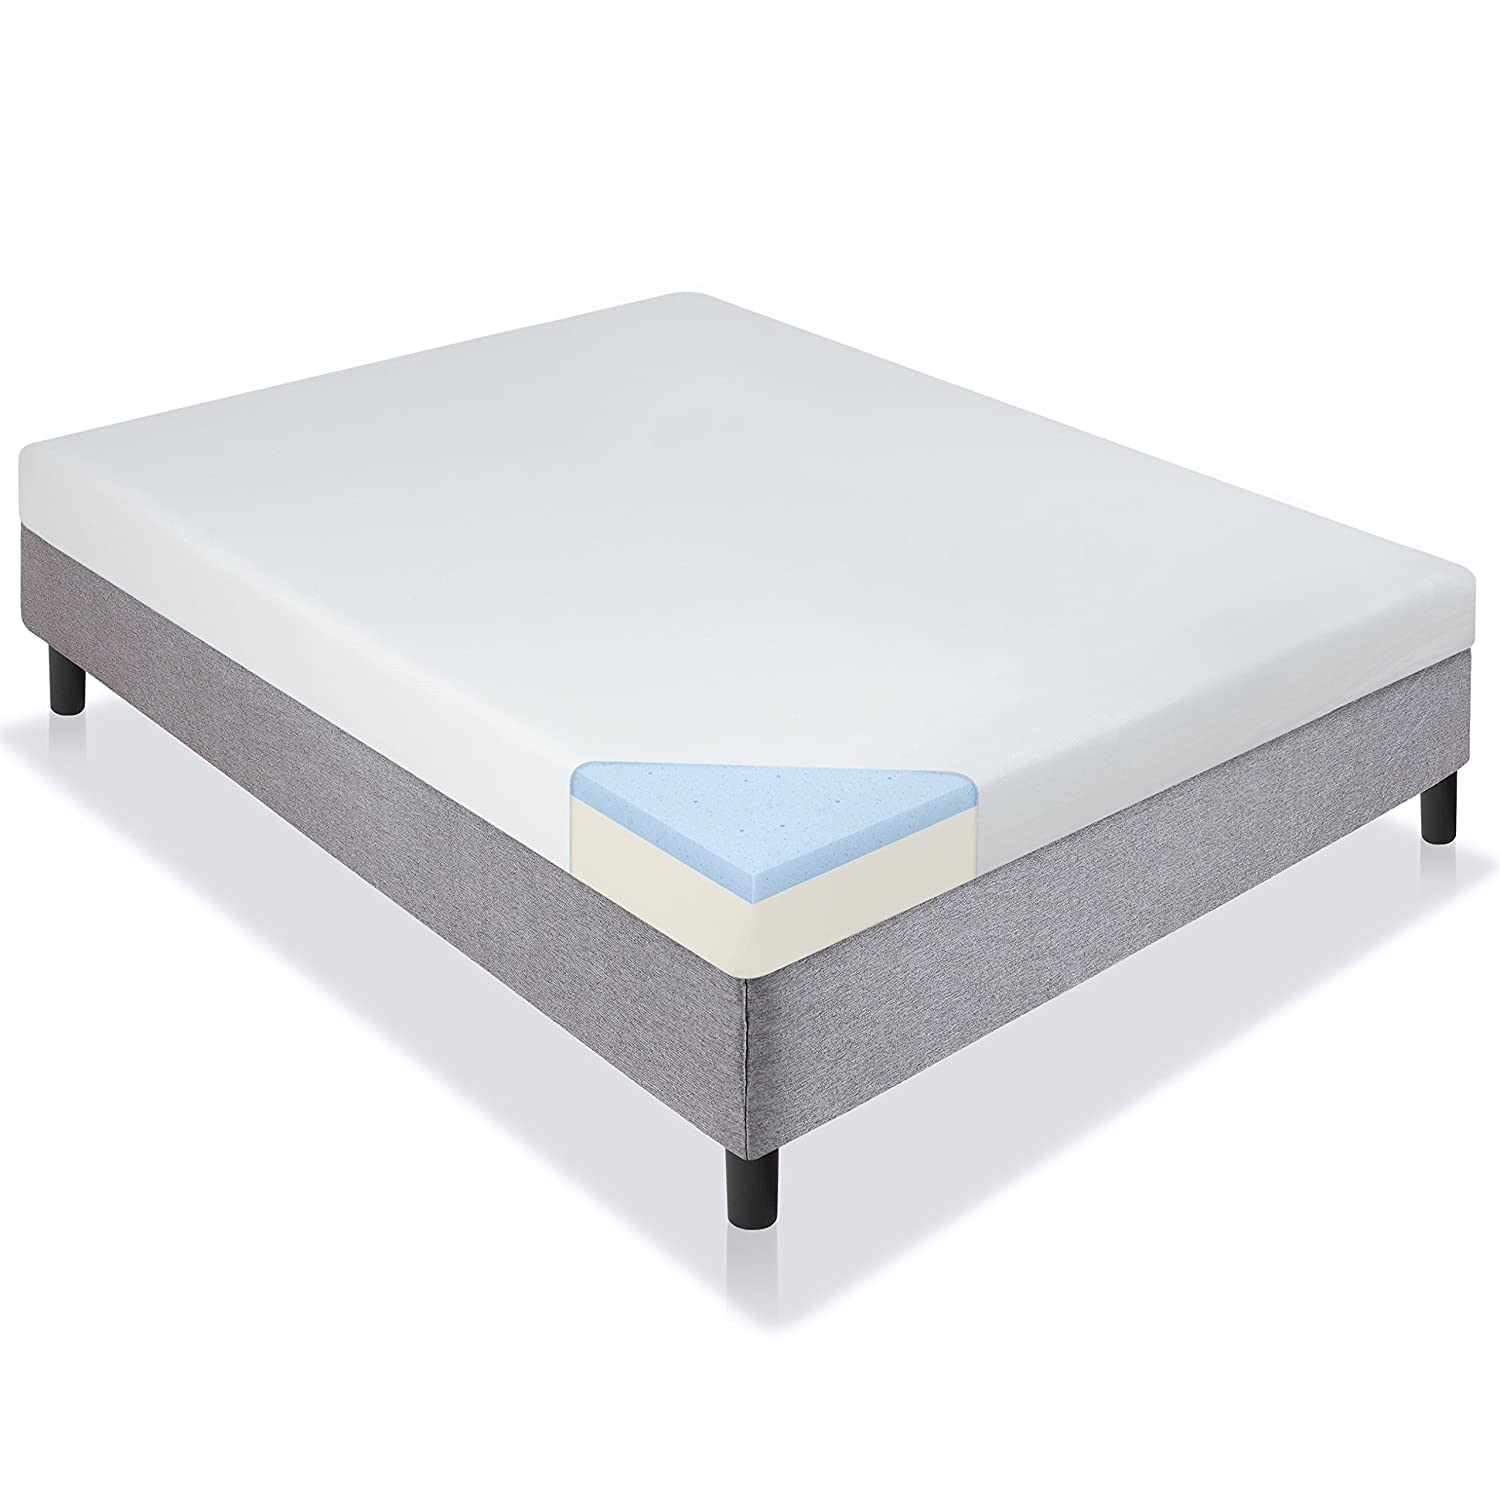 Best Choice Products 5 Dual Layered Gel Memory Foam Mattress CertiPUR-US